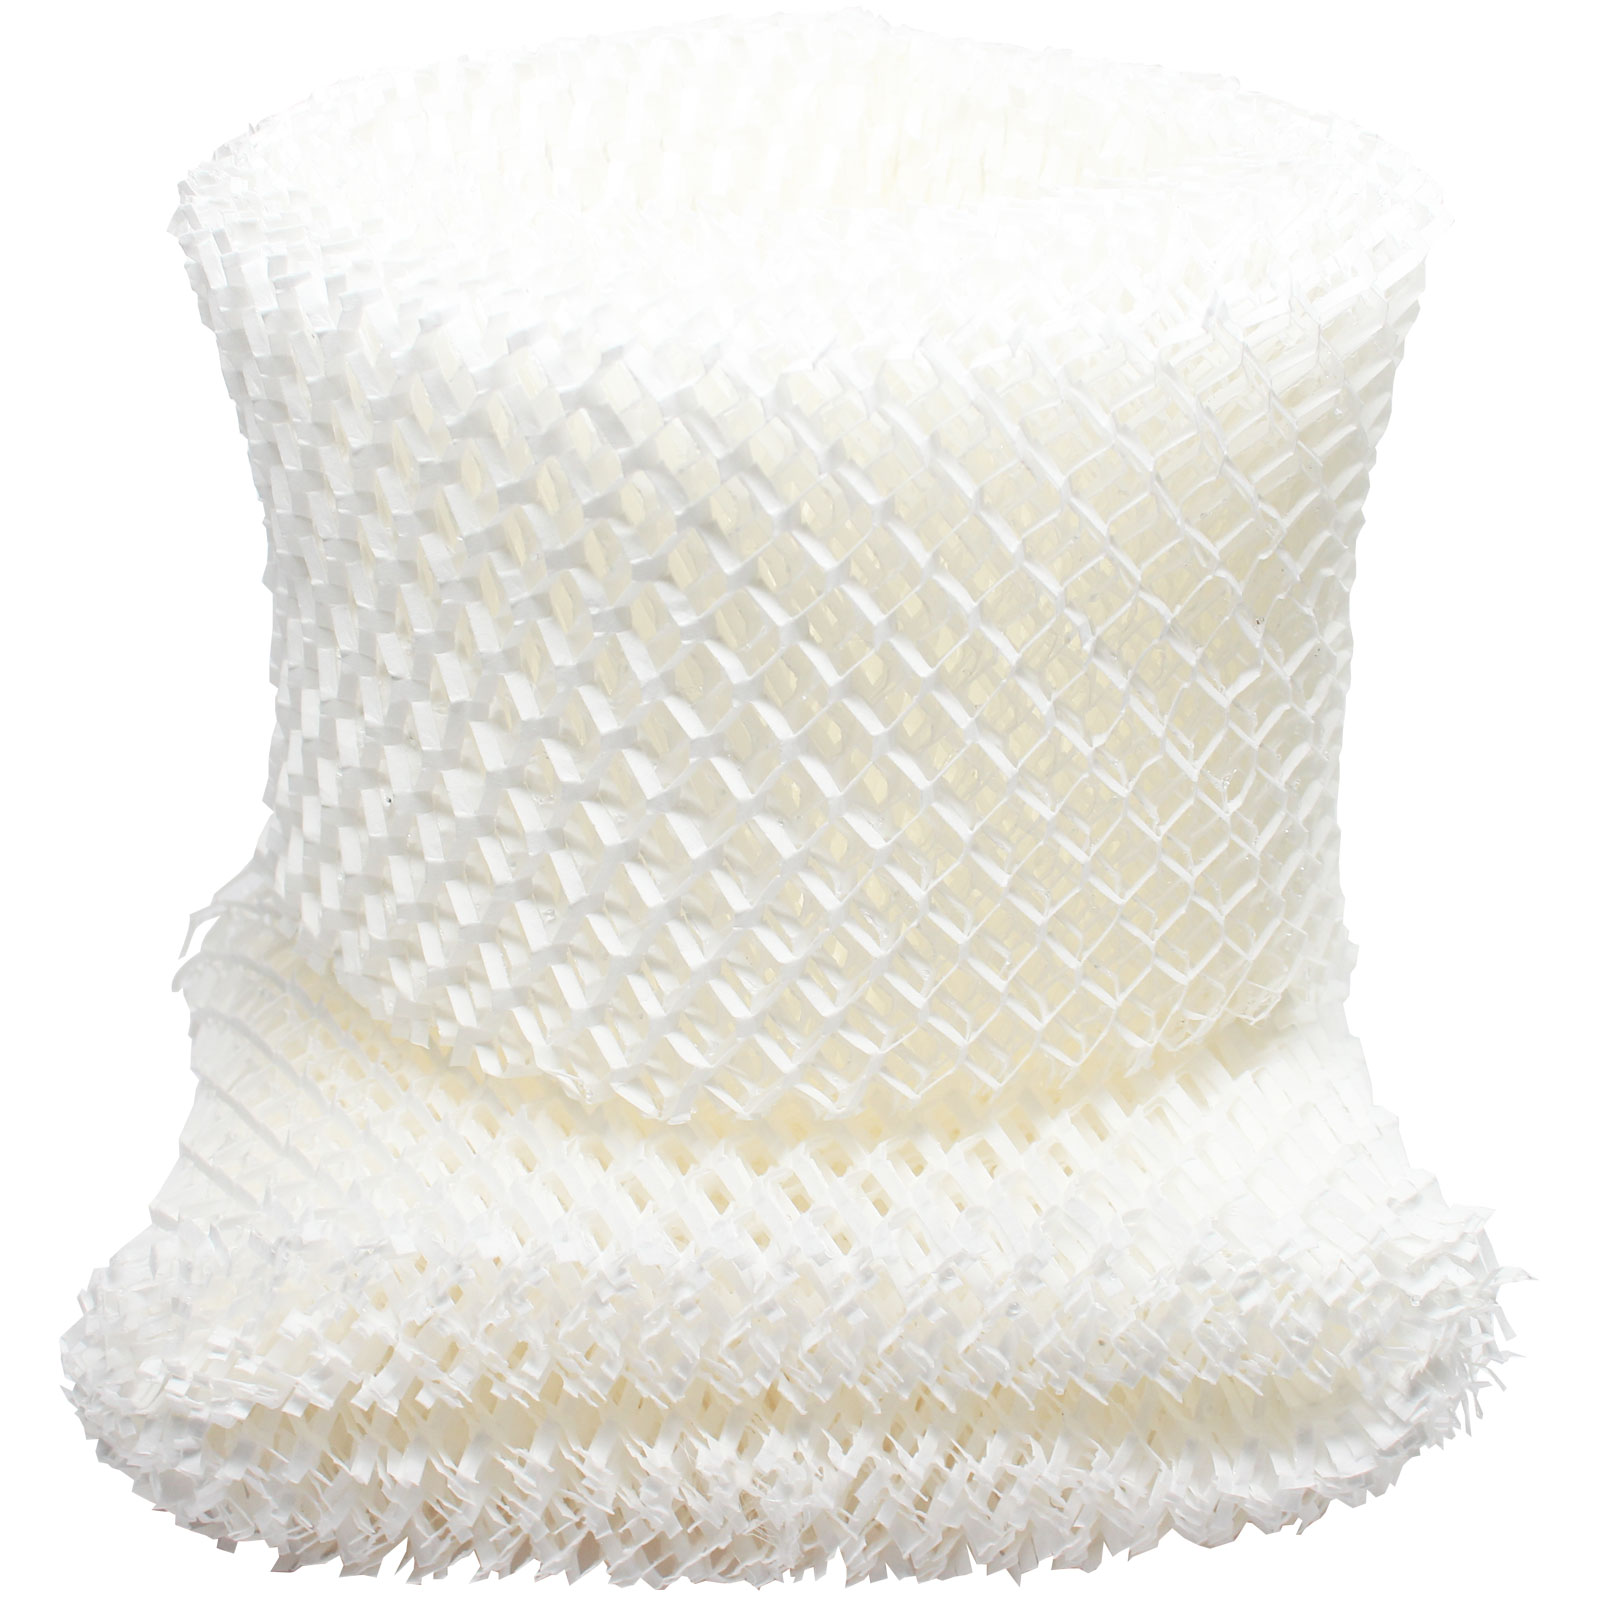 4x Humidifier Filter for Honeywell HCM-300T,HCM-350,HCM-631,HAC-504AW,HCM-315T